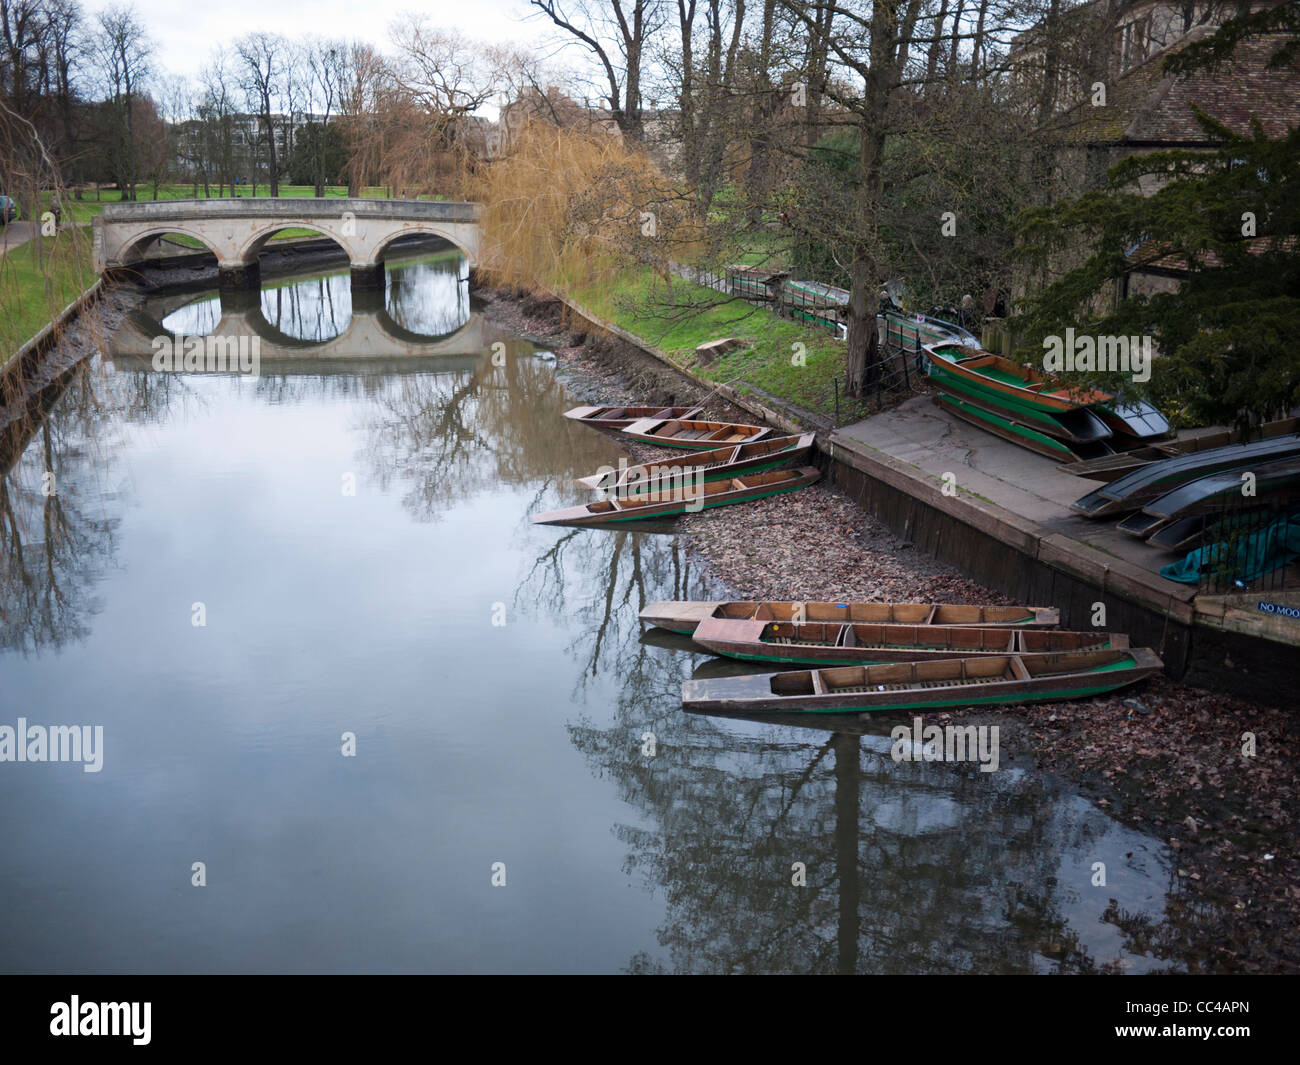 The River Cam in Cambridge with very low water levels as it is drained for maintenance and clearance work. - Stock Image